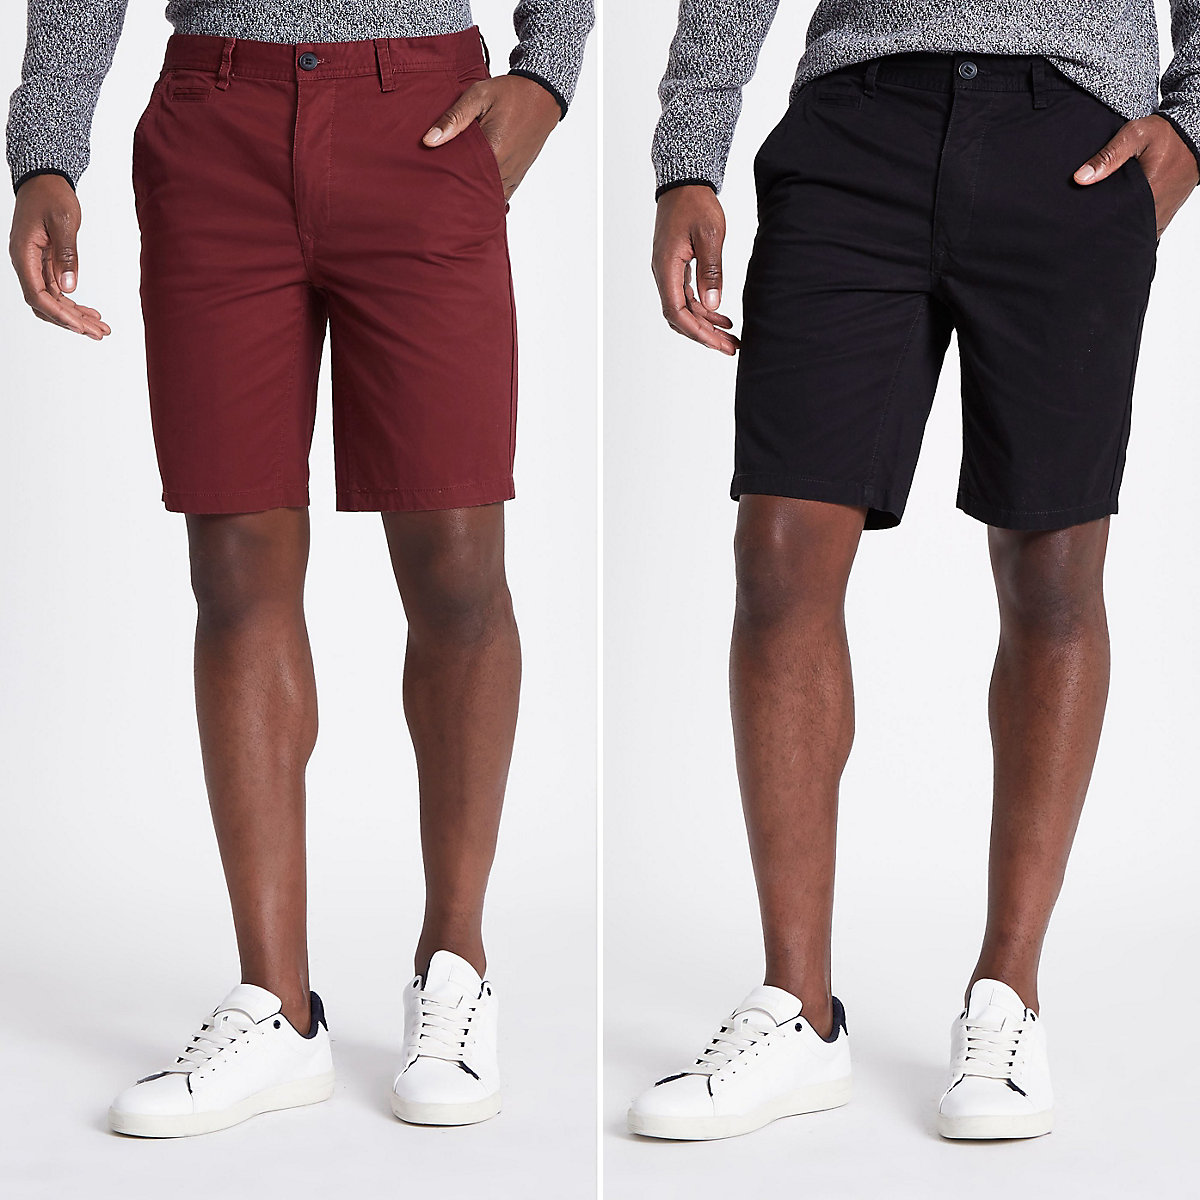 Black slim fit chino shorts 2 pack